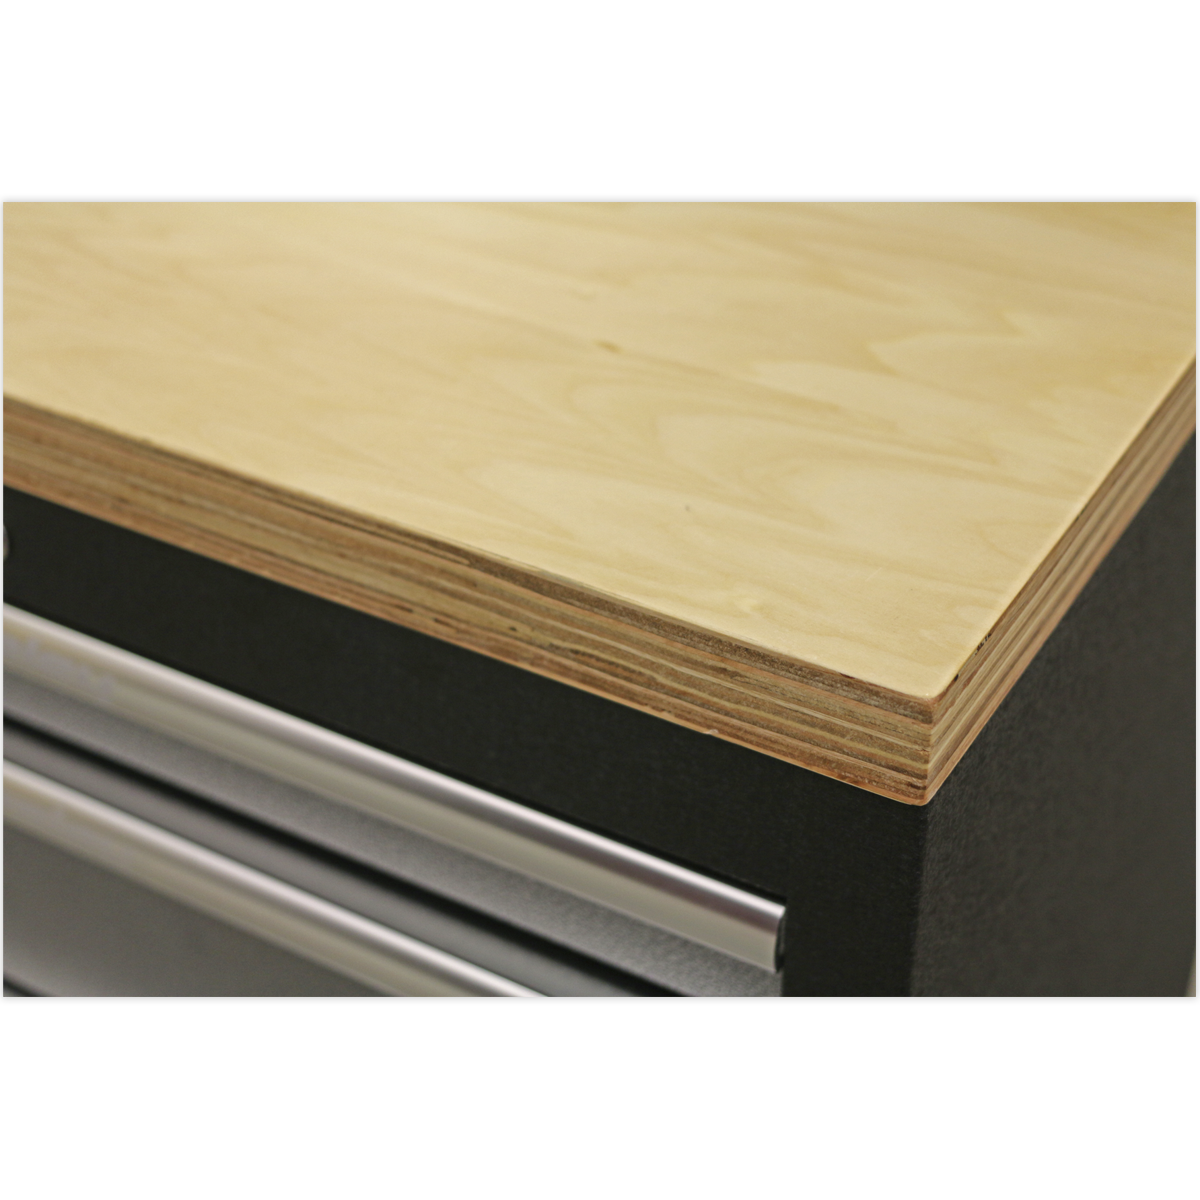 Pressed Wood Worktop 680mm   SEALEY APMS50WA by Sealey   New